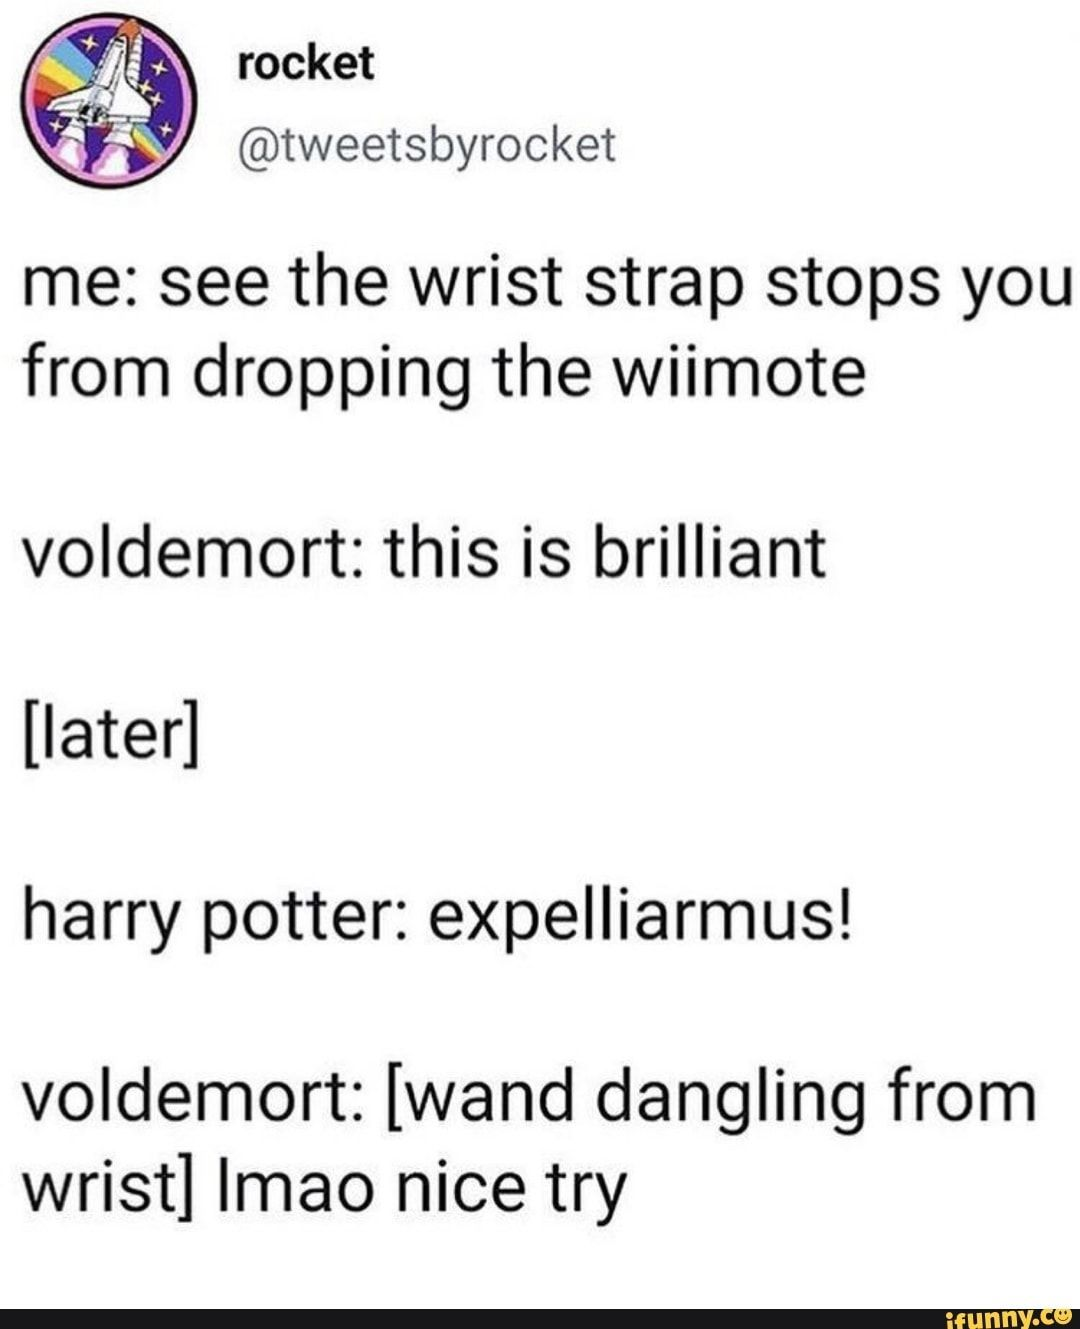 Me See The Wrist Strap Stops You From Dropping The Wiimote Voldemort This Is Brilliant Later Harry Potter Expelliarmus Volde Lustig Witzig Mach Dein Ding